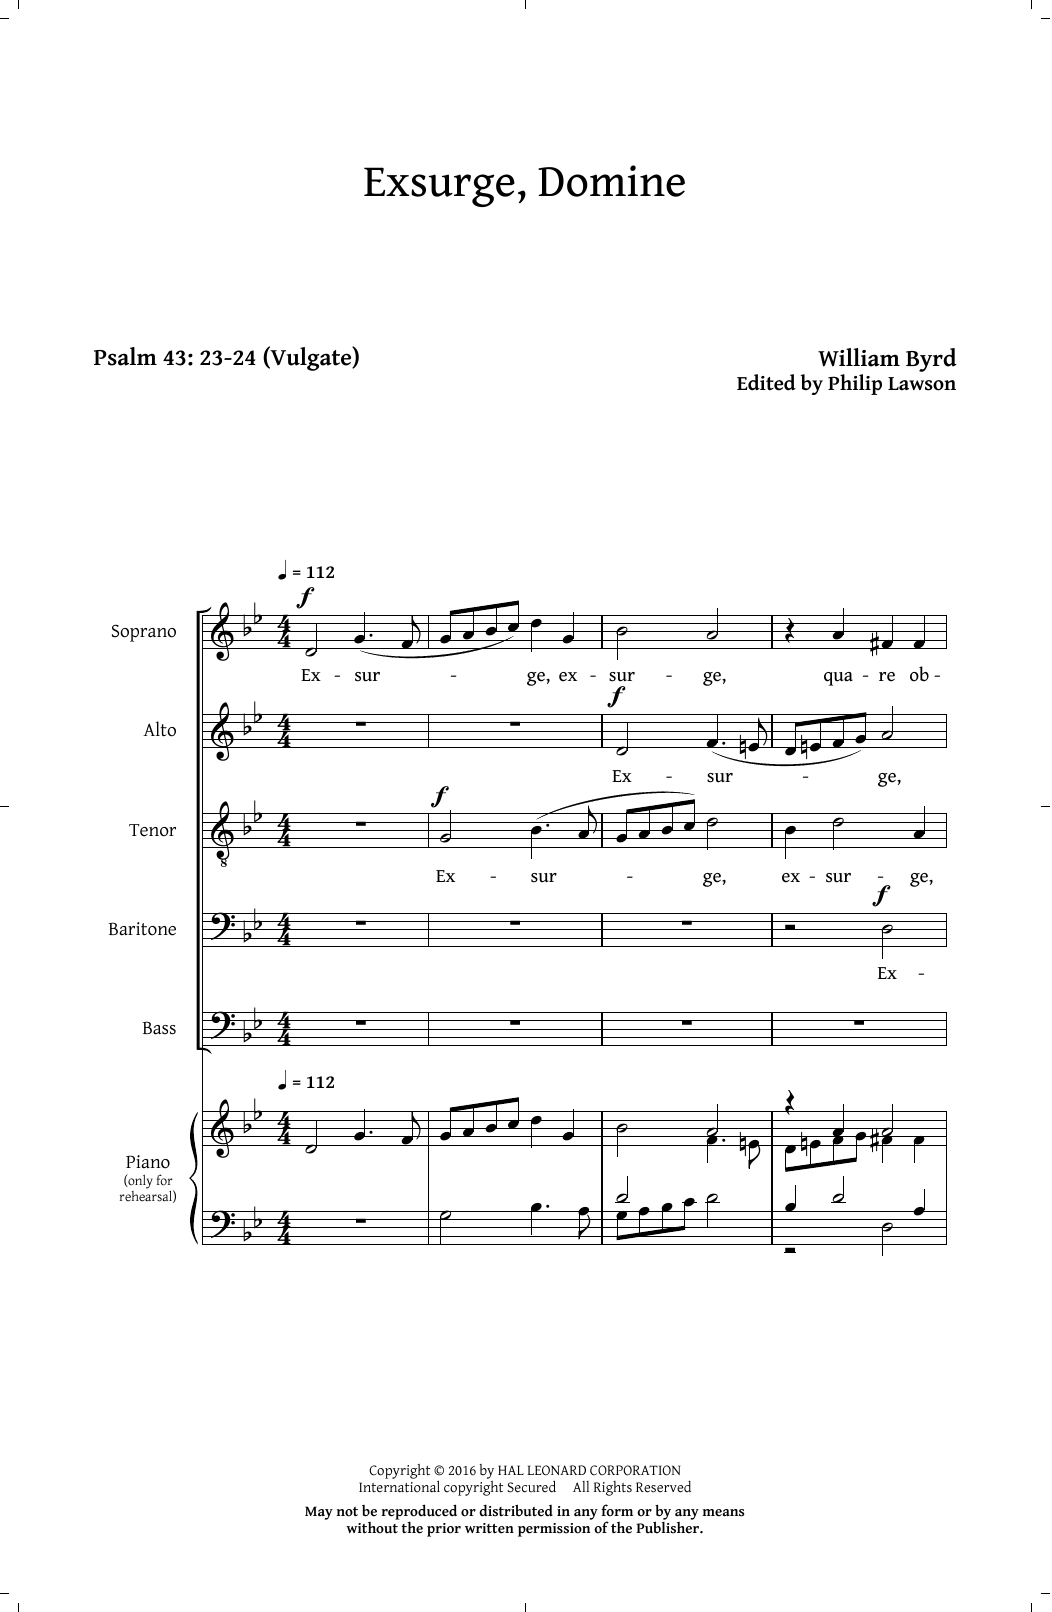 Exsurge, Domine (SATB Choir)